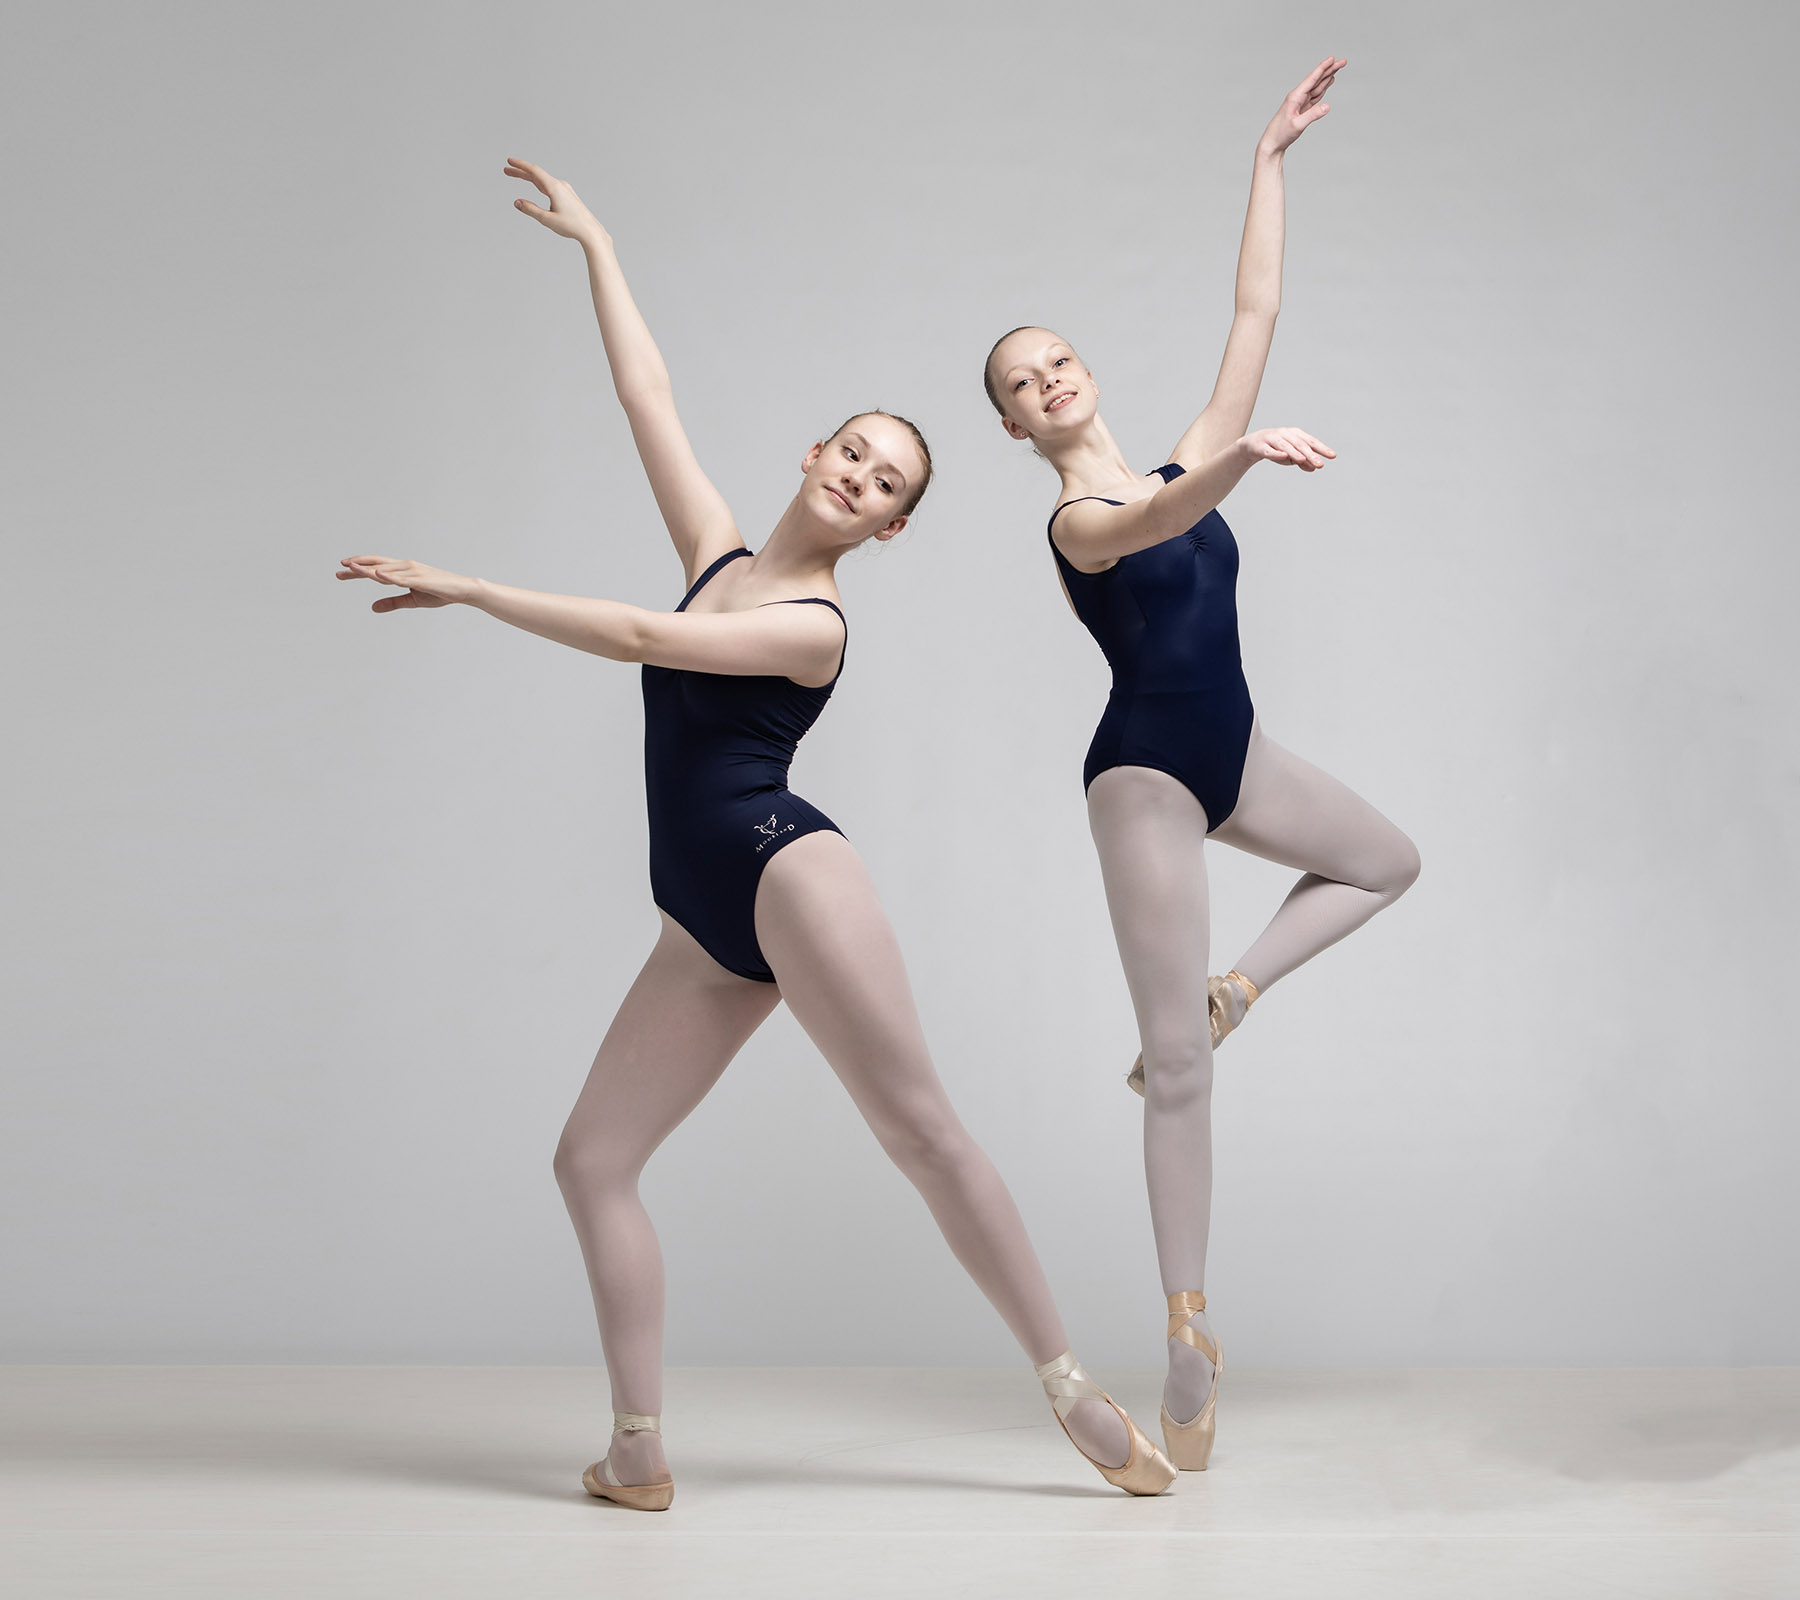 Two ballet students posing